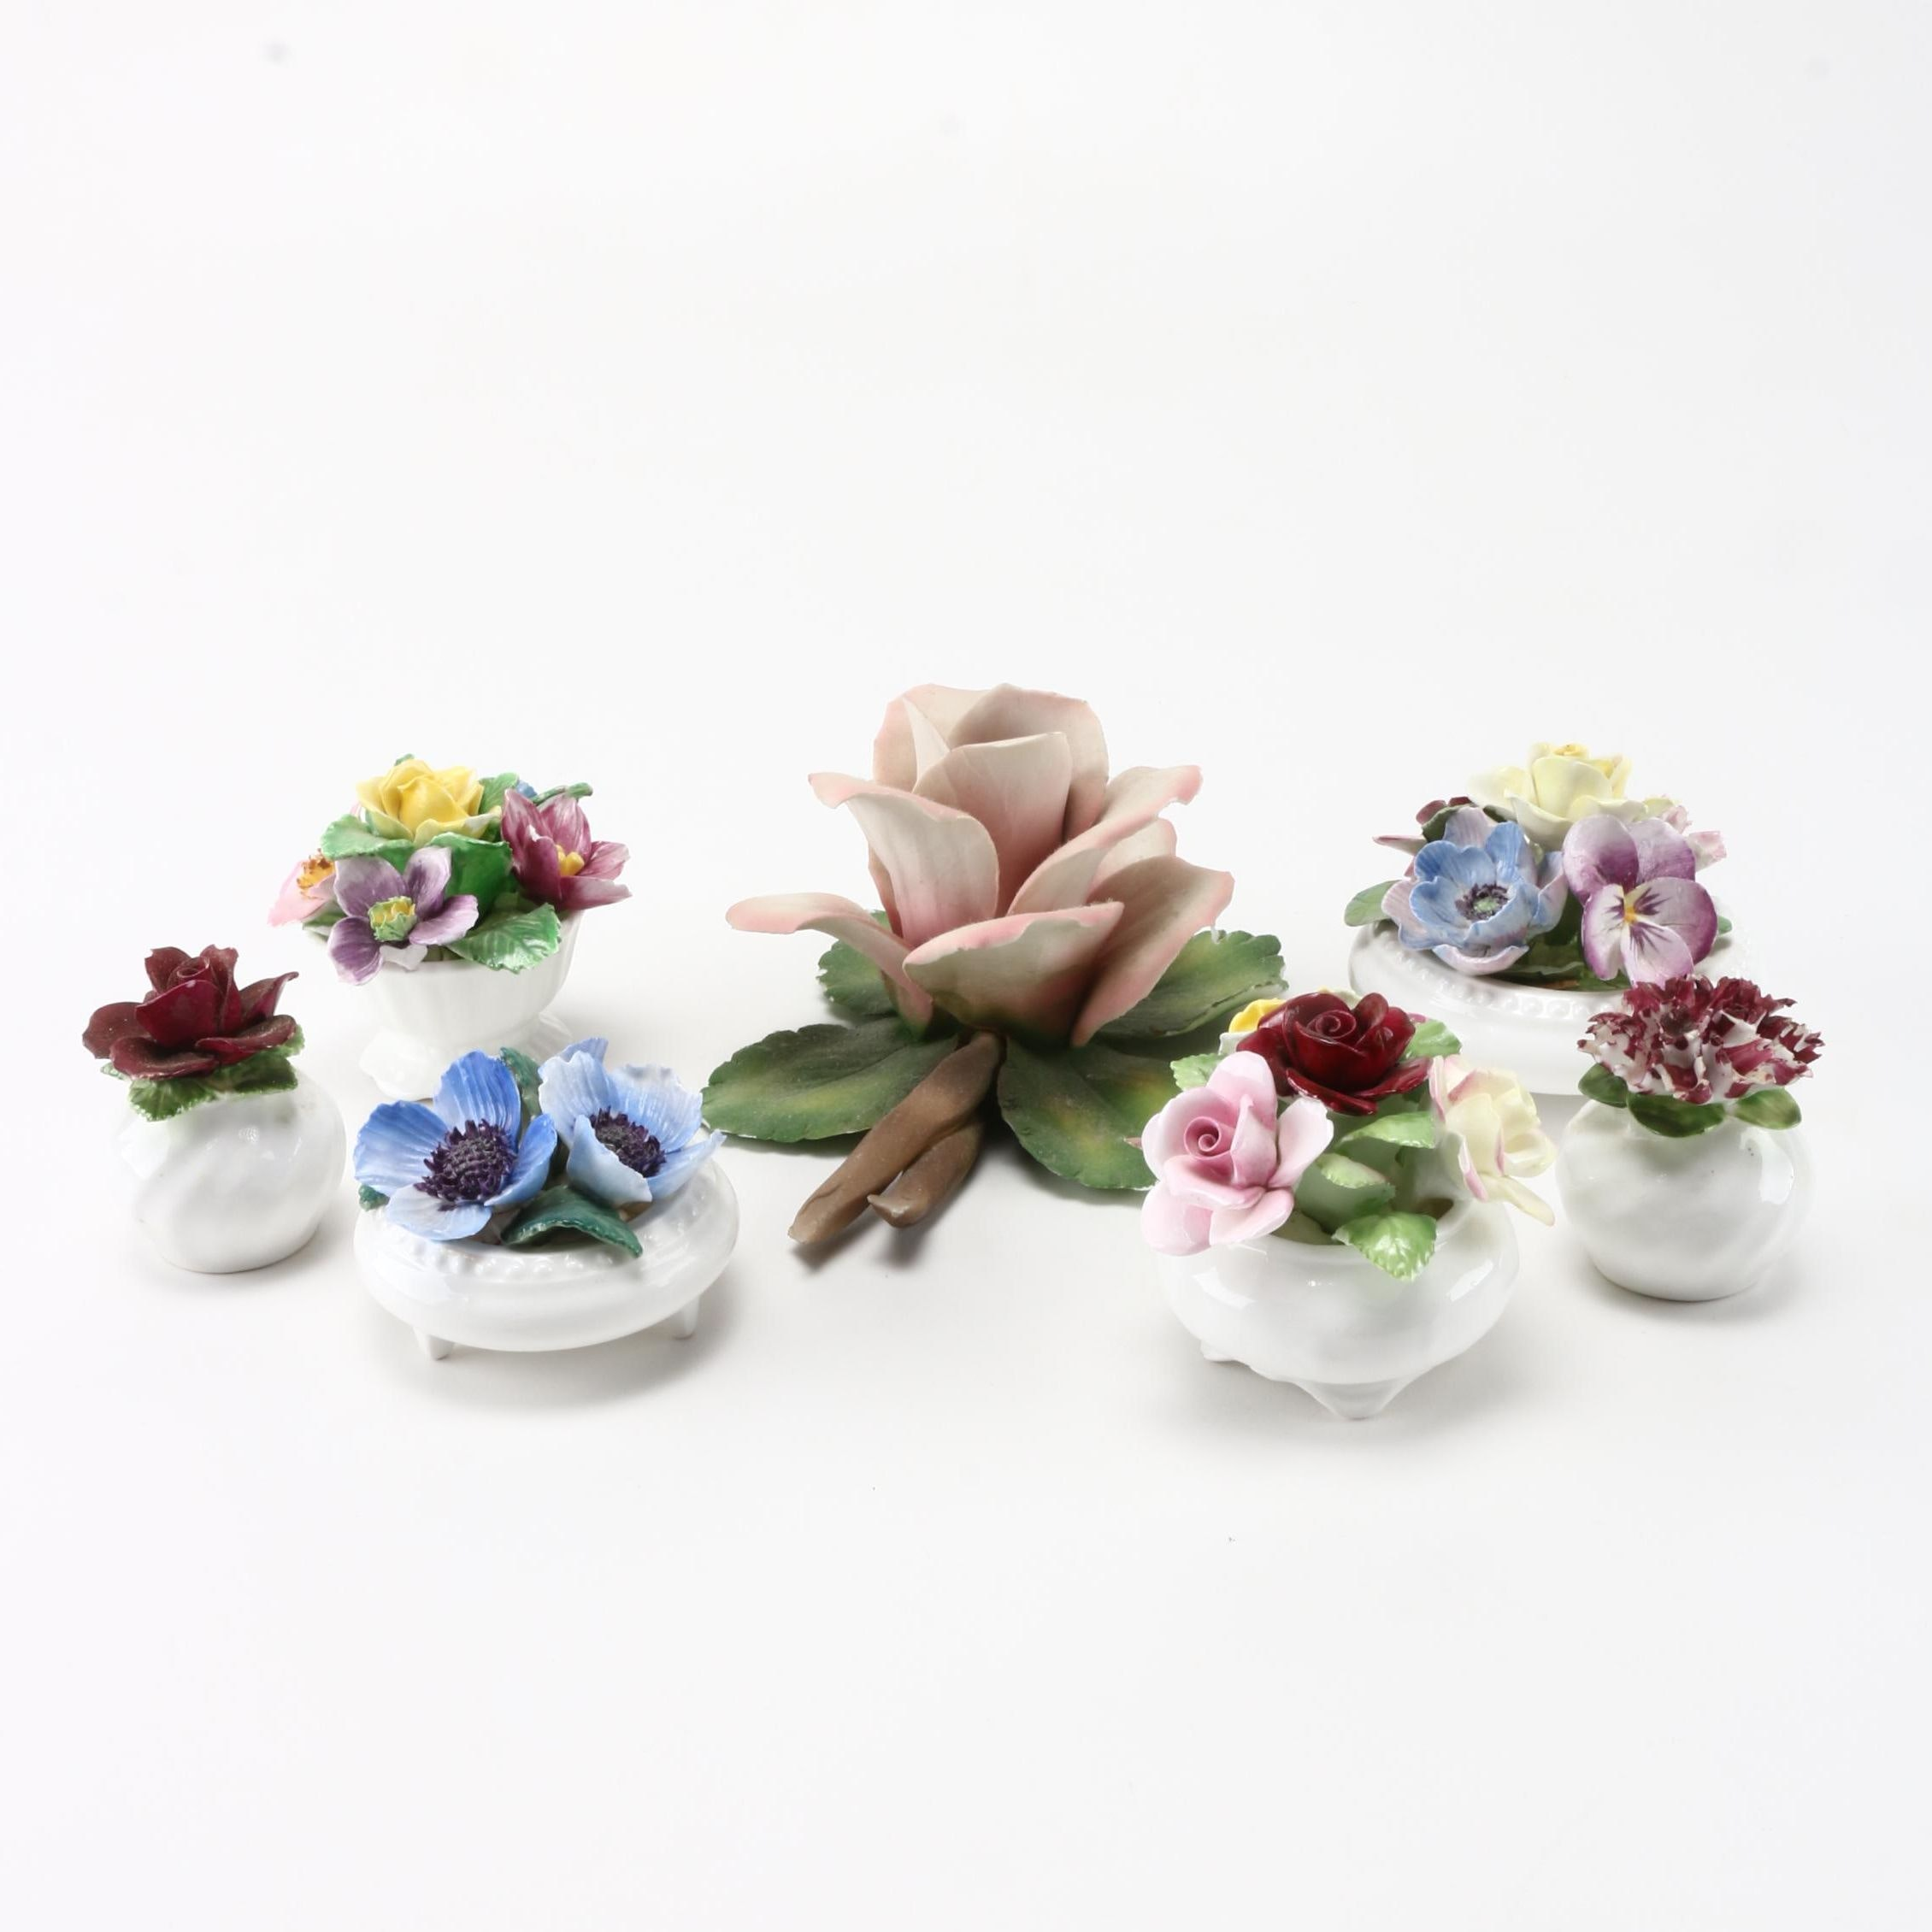 Bone China Floral Figures Featuring Royal Doulton